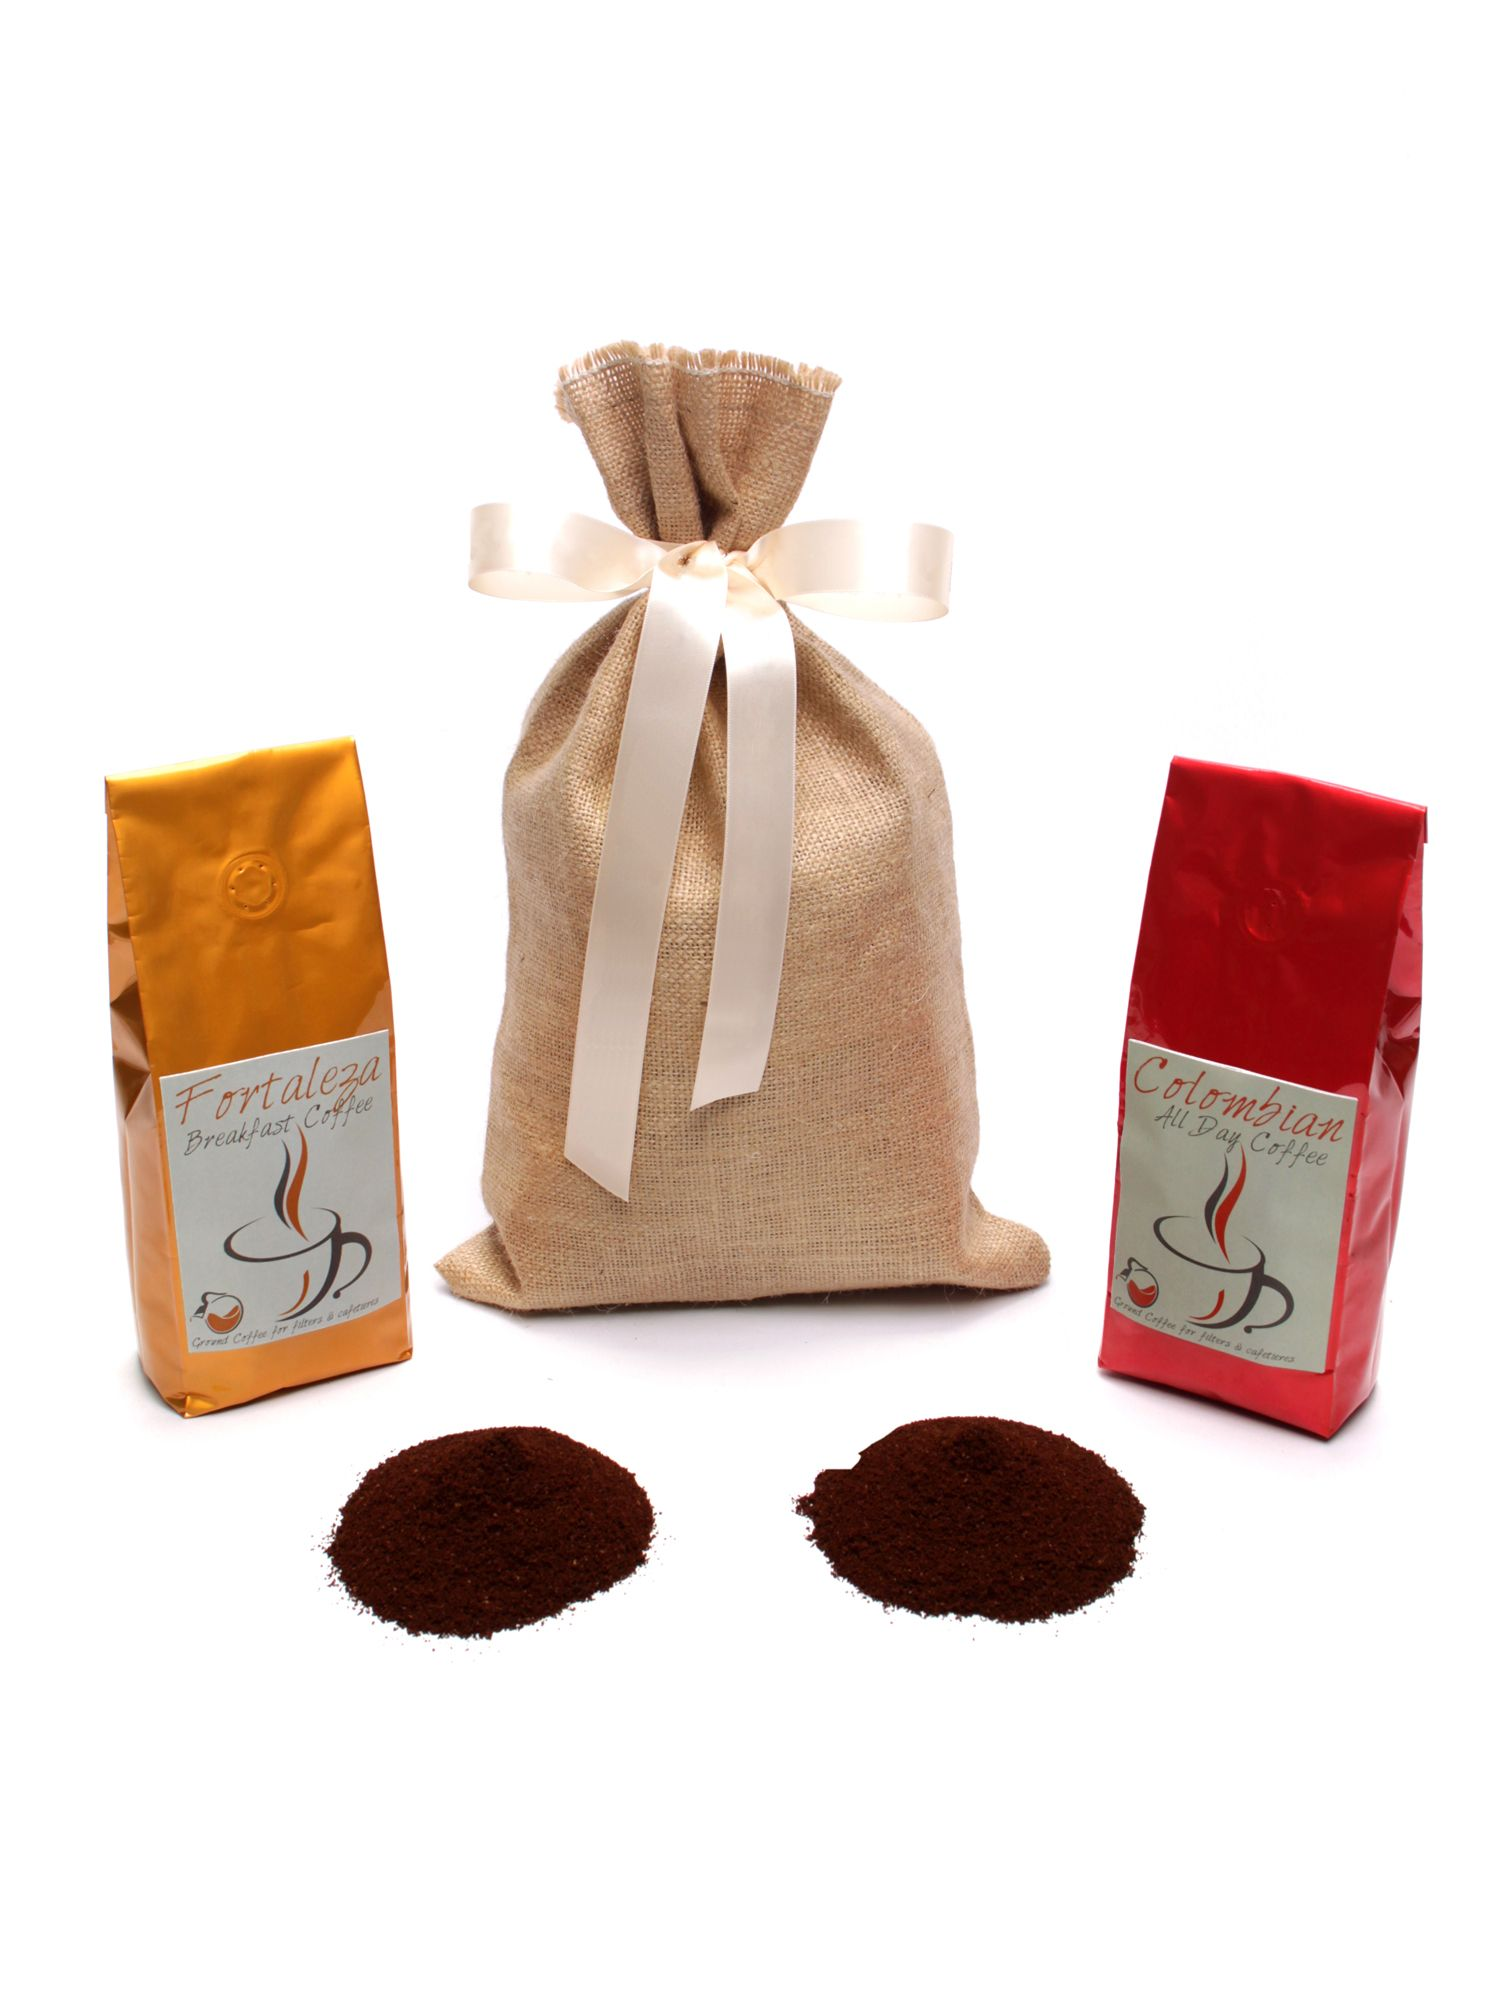 Floric Floric Coffee Hamper Breakfast & All Day Ground Coffee